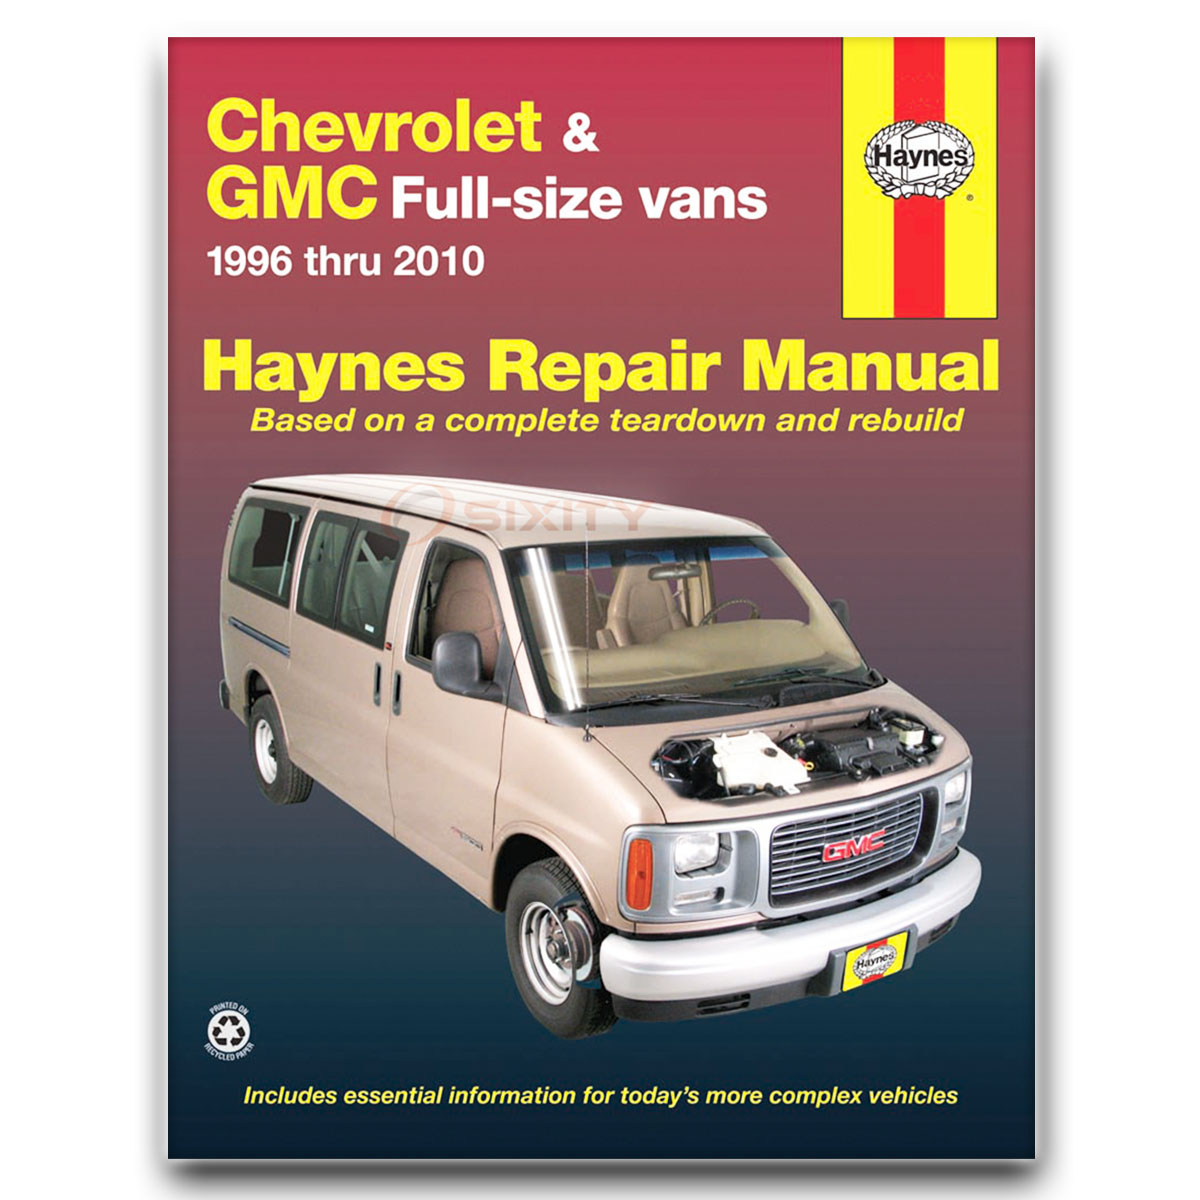 gmc savana 2500 haynes repair manual ls lt base sle slt shop service rh ebay com GMC Savana Passenger Van 2006 gmc savana service manual